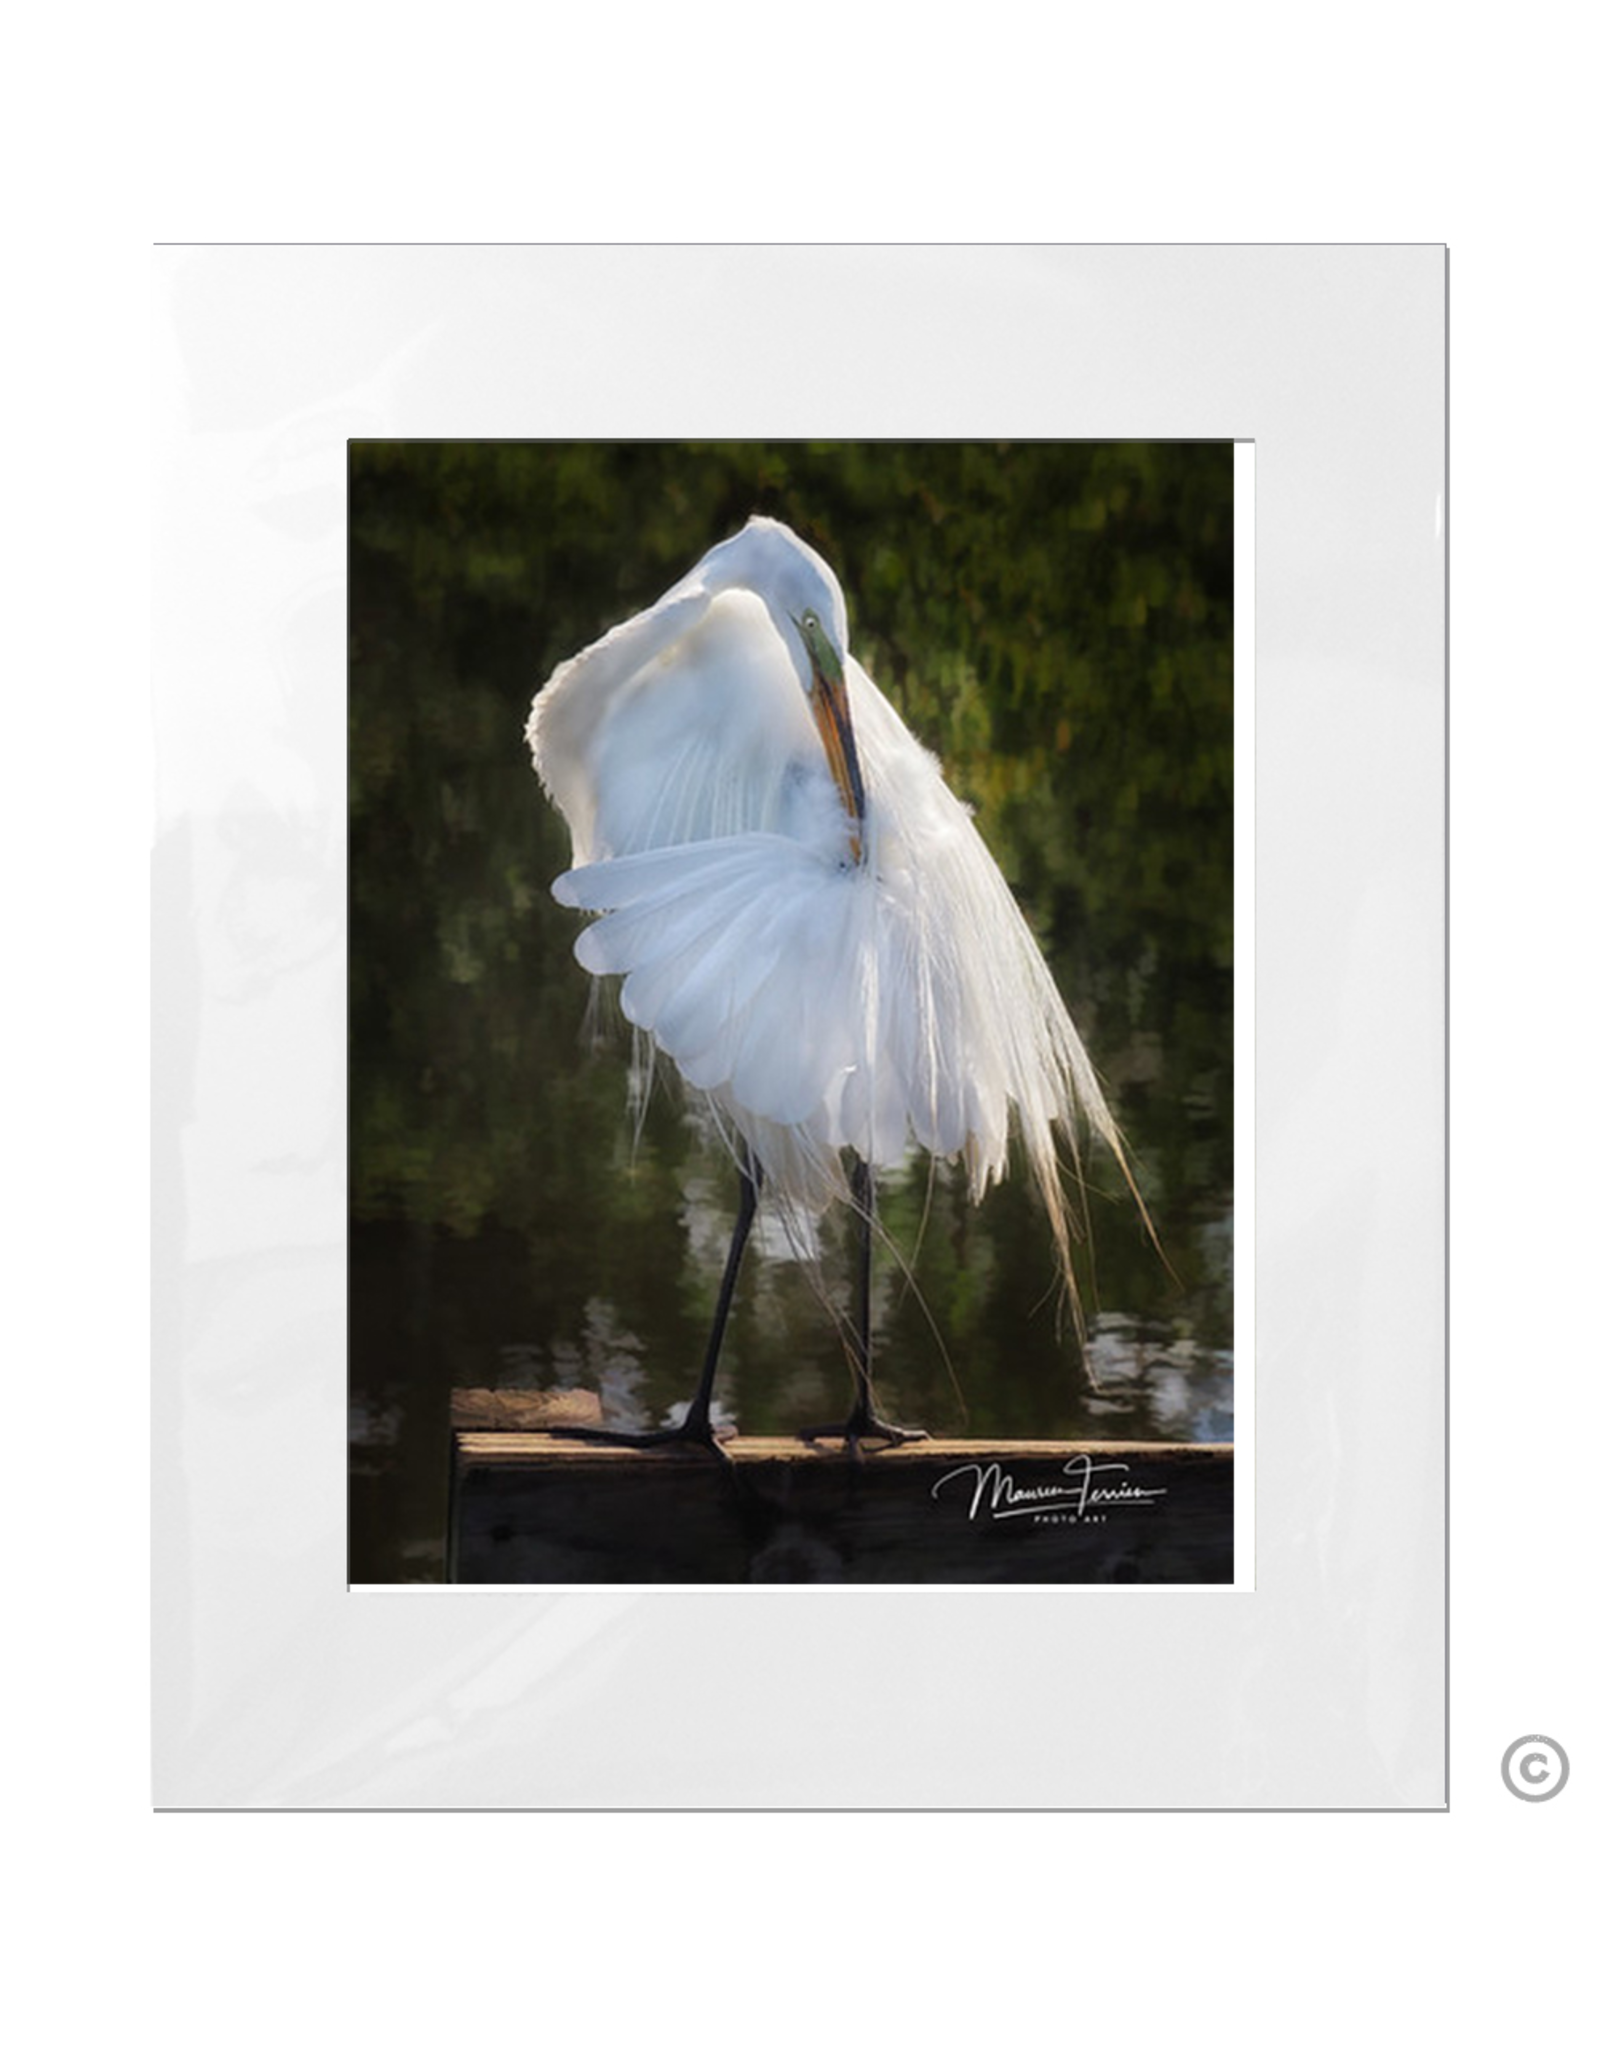 Maureen Terrien Photography Art Print Egret Preening B 11x14 - 16x20 Matted